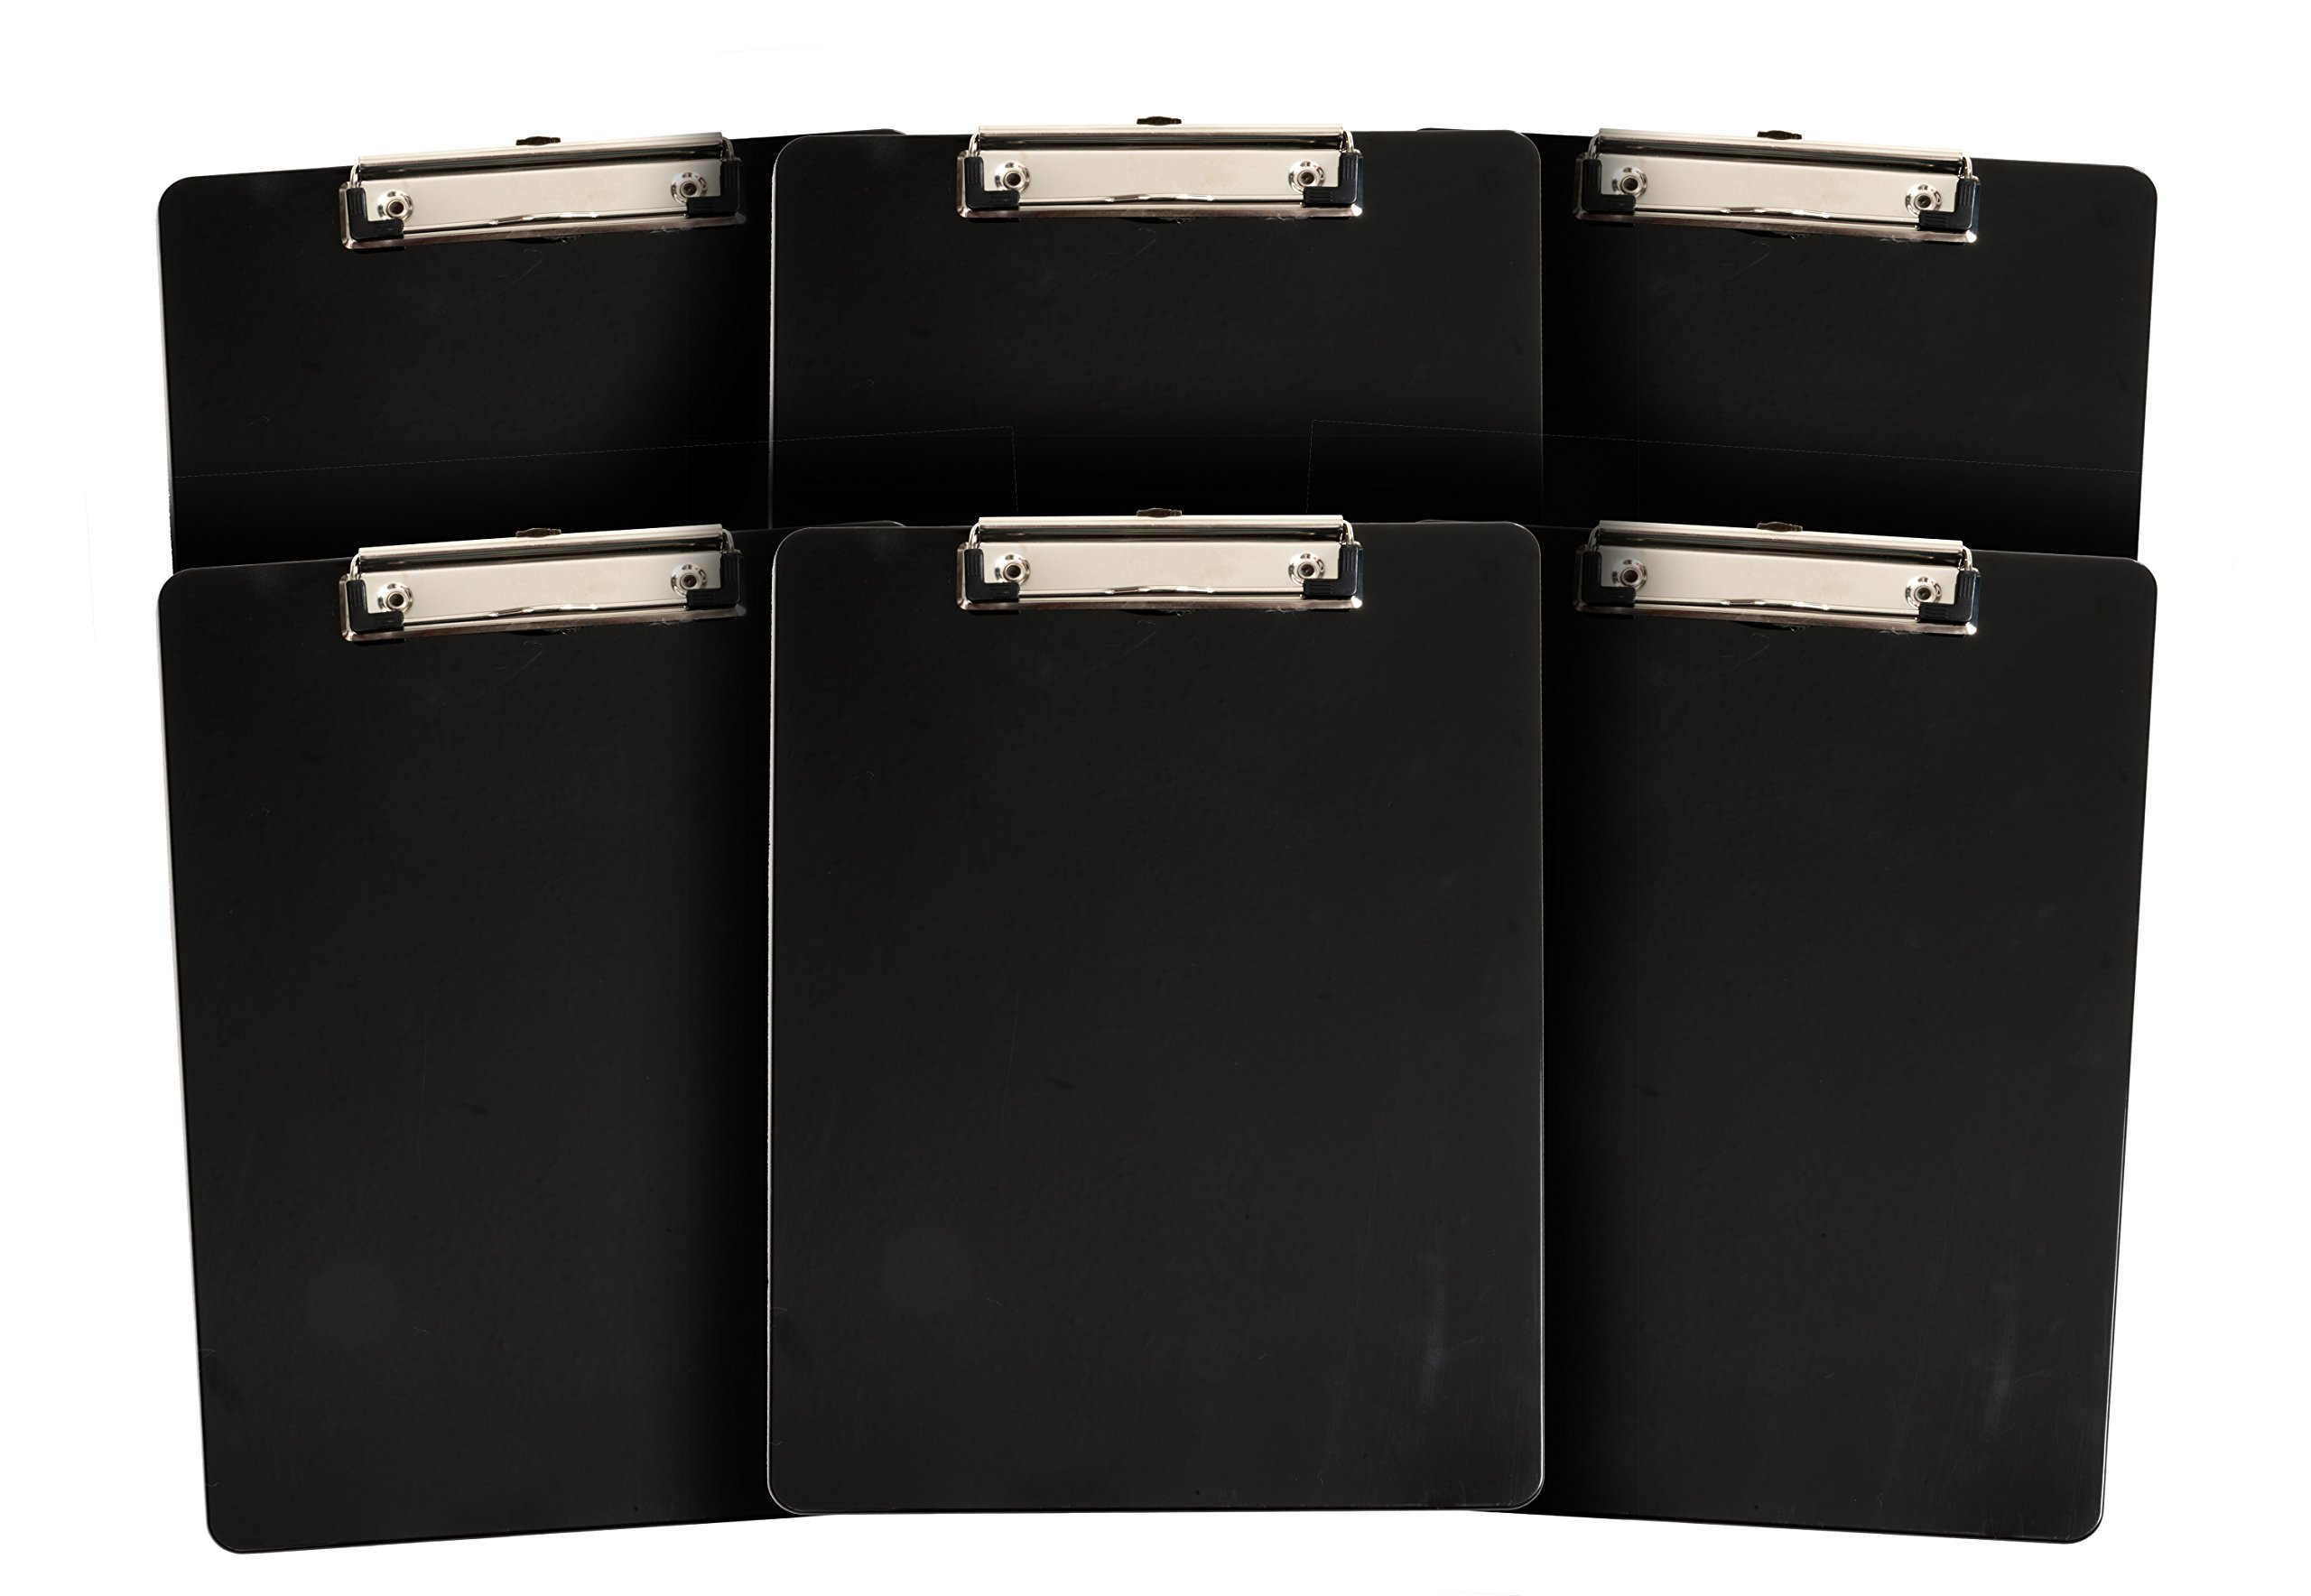 6 Pack Black Plastic Clipboard, Low Profile Clip, Clipboards for classrooms, offices, restaurants, doctor offices, 6 Plastic Clipboard Pack